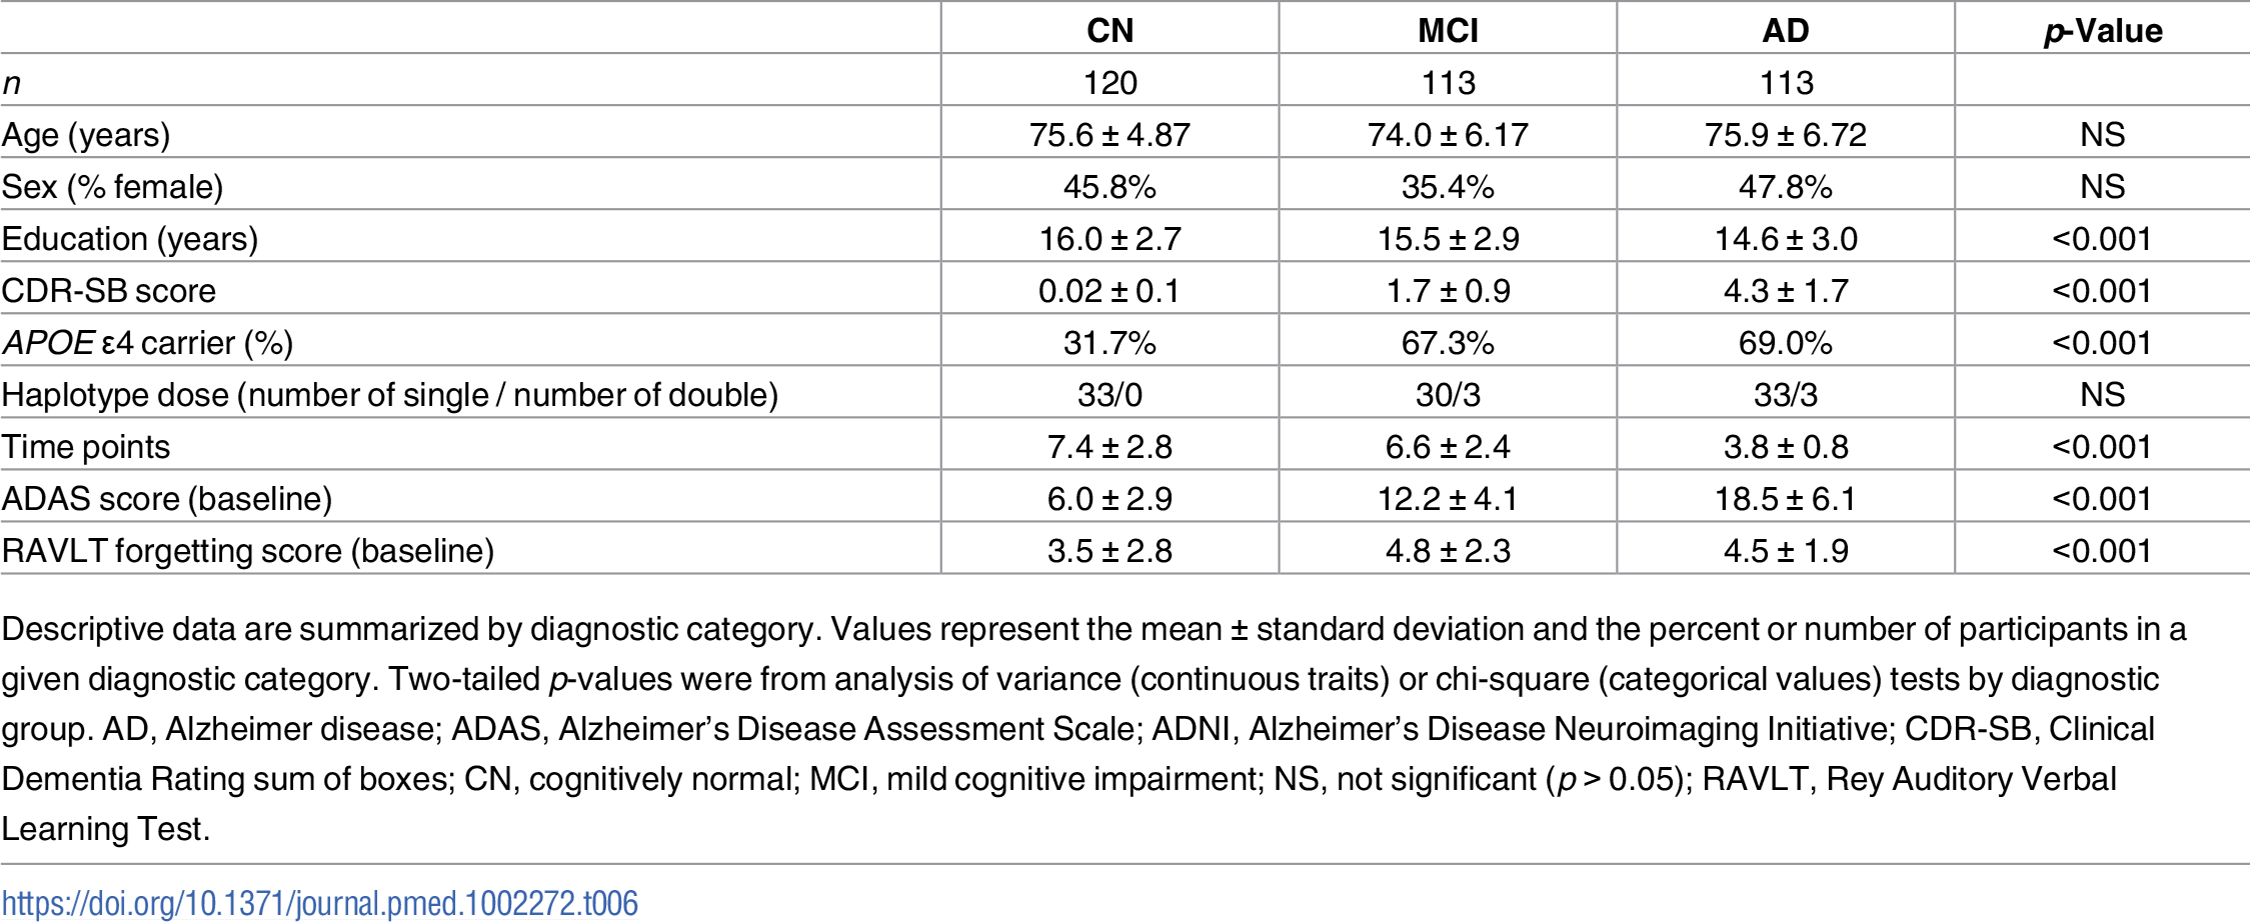 Summary statistics for ADNI participants with longitudinal cognitive measures.